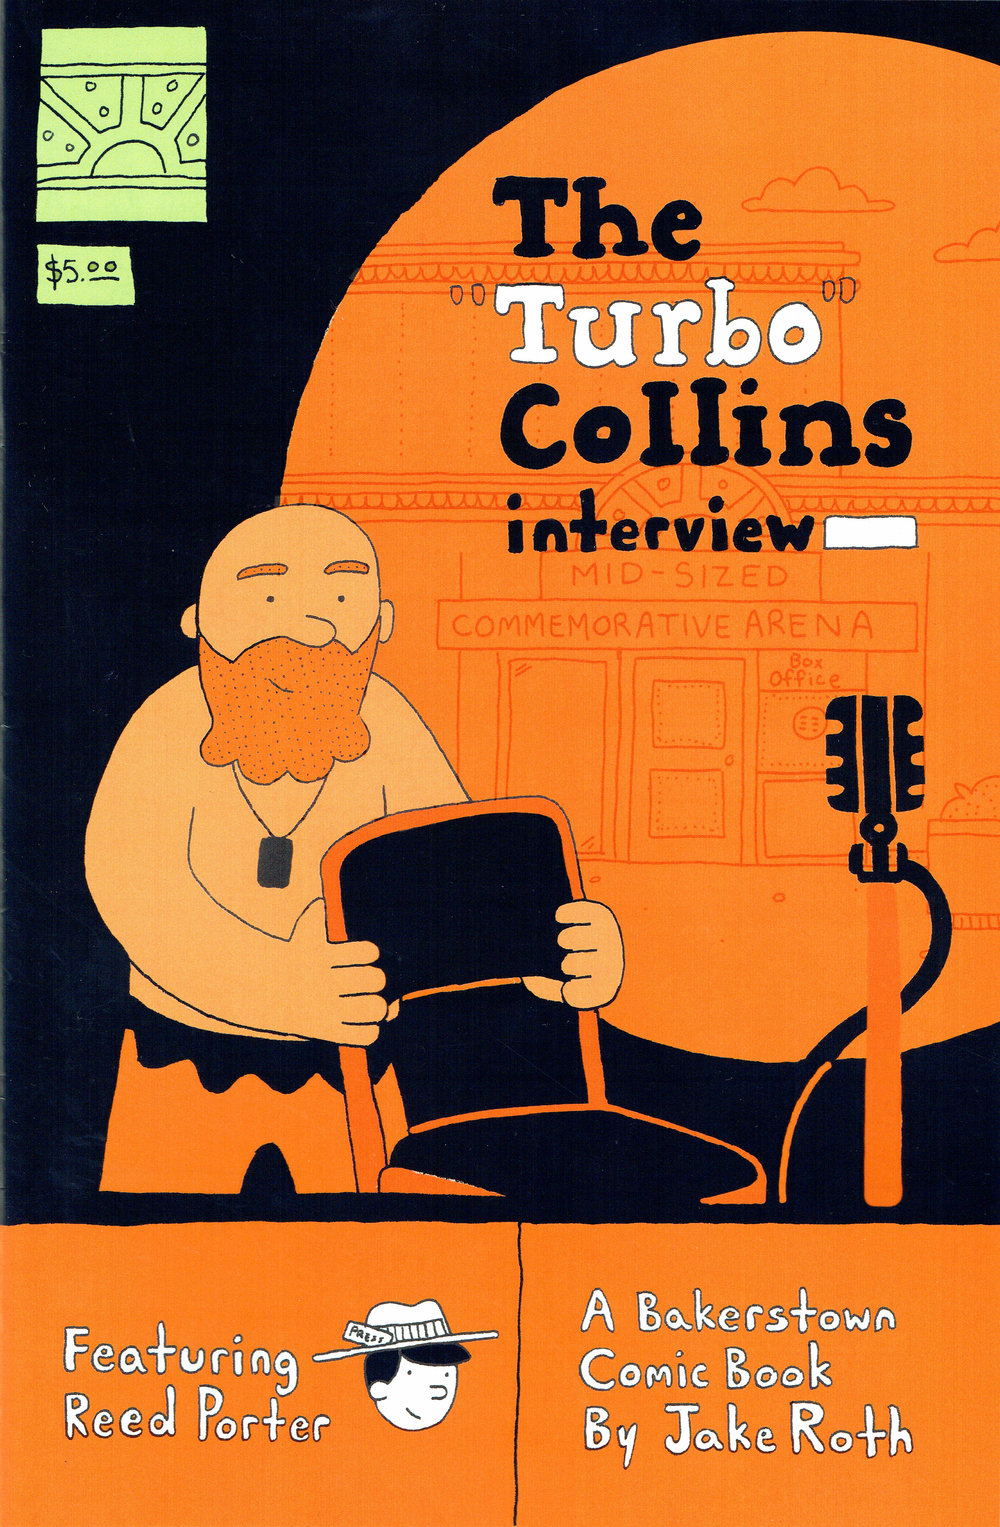 The Turbo Collins Interview by Jake Roth.